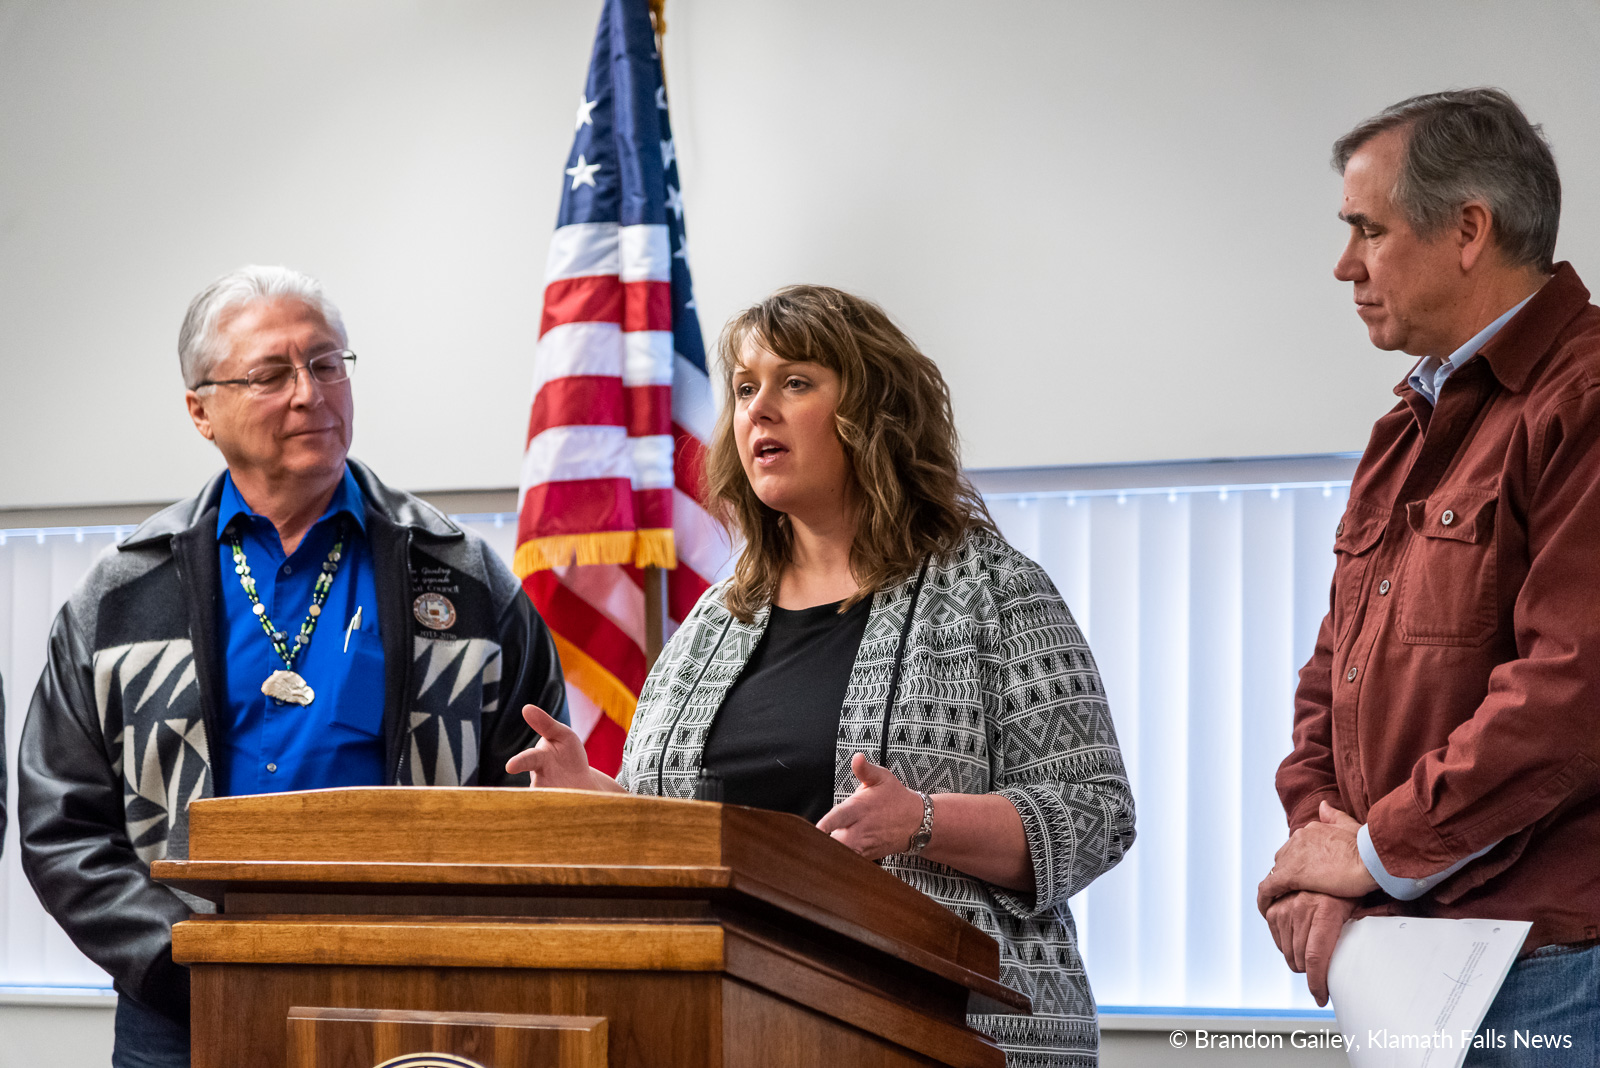 """""""Stability for our farms, survival of the species and success of our community all hinge on addressing the issues in collaborative, creative ways,"""" said Tricia Hill. February 23, 2019. (Brandon Gailey / Klamath Falls News)"""